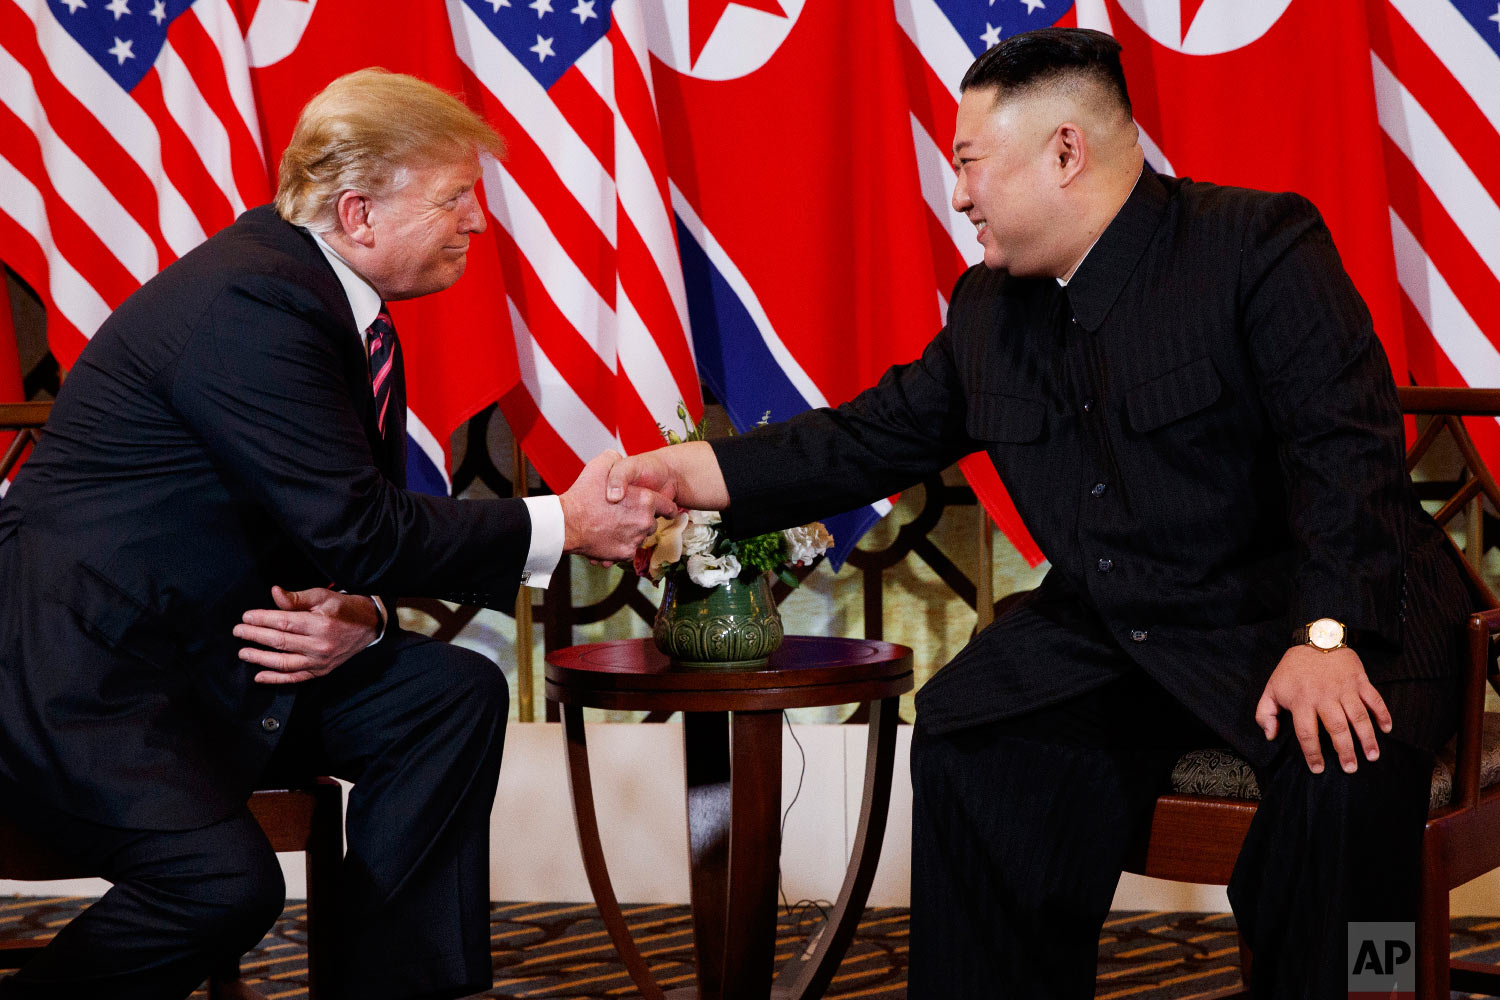 U.S. President Donald Trump shakes hands with North Korean leader Kim Jong Un, Wednesday, Feb. 27, 2019, in Hanoi. (AP Photo/ Evan Vucci)